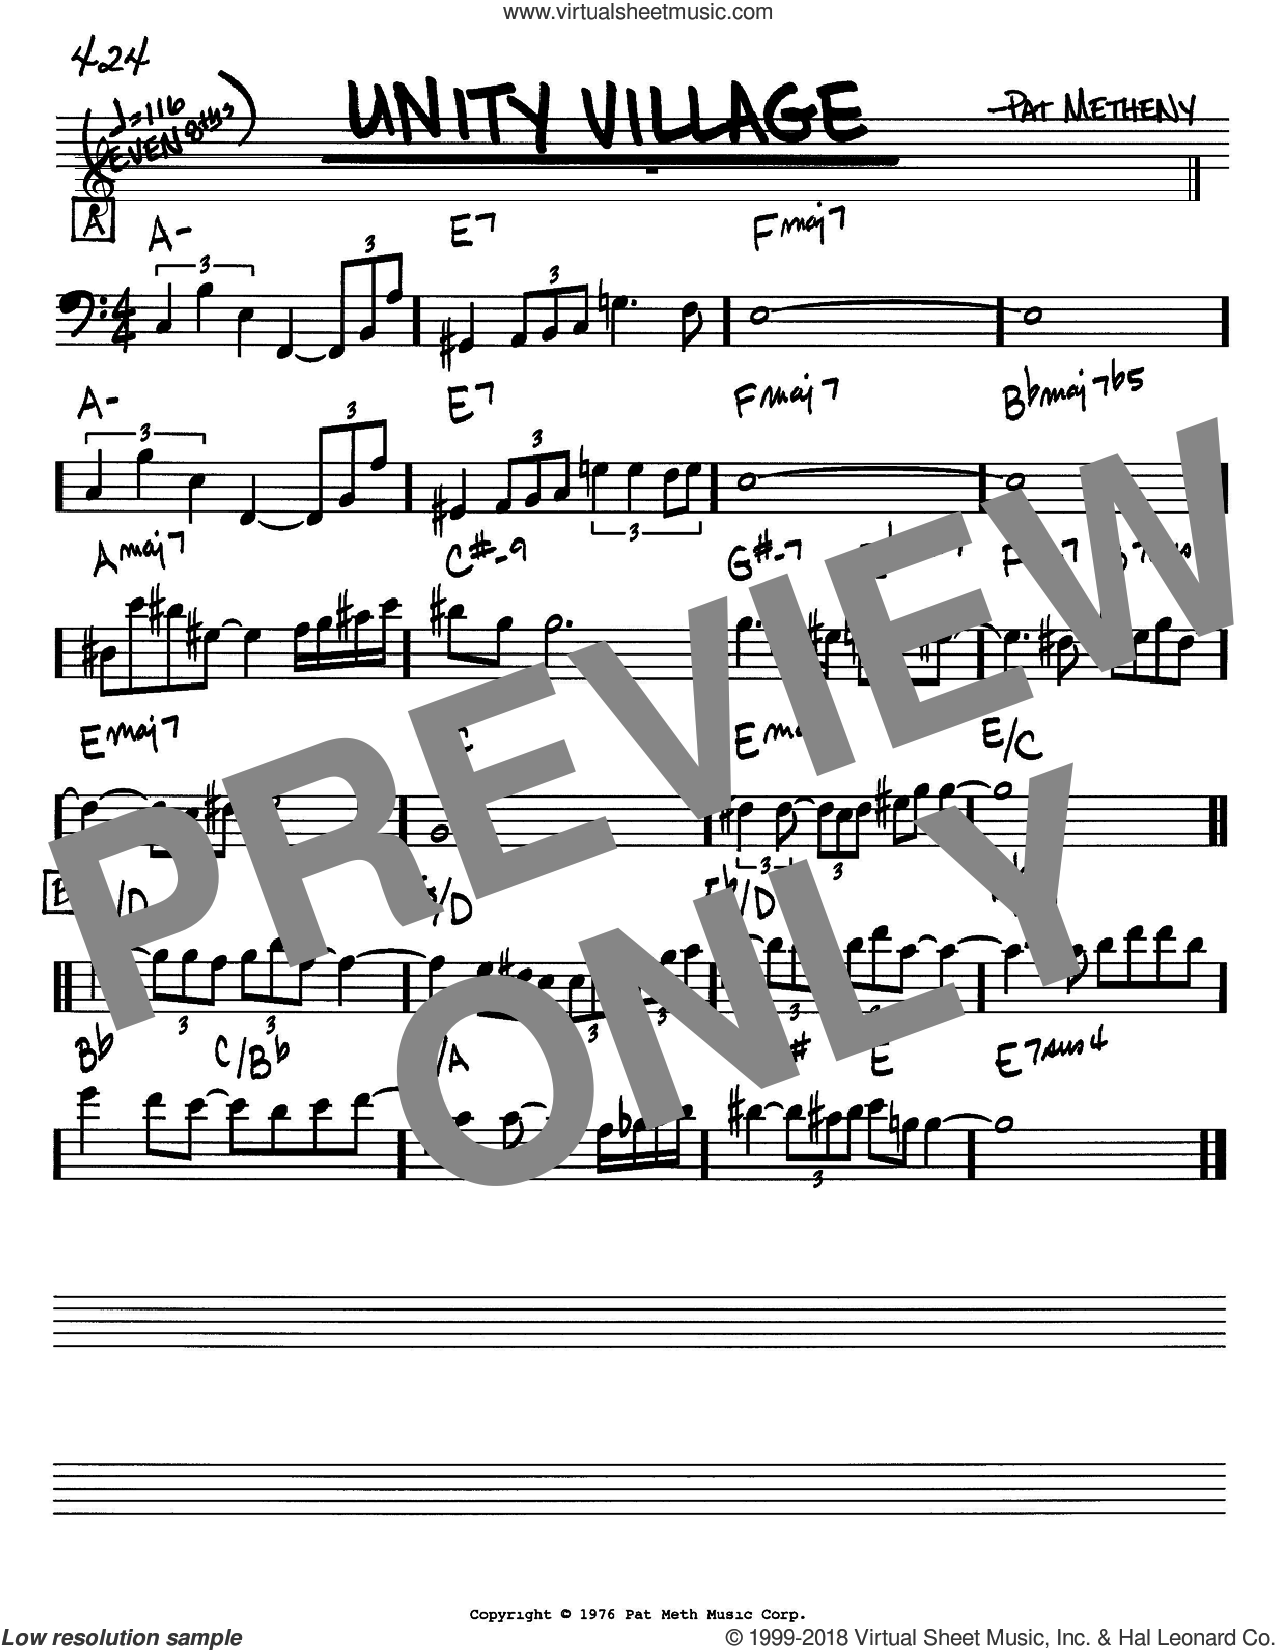 Unity Village sheet music for voice and other instruments (Bass Clef ) by Pat Metheny. Score Image Preview.